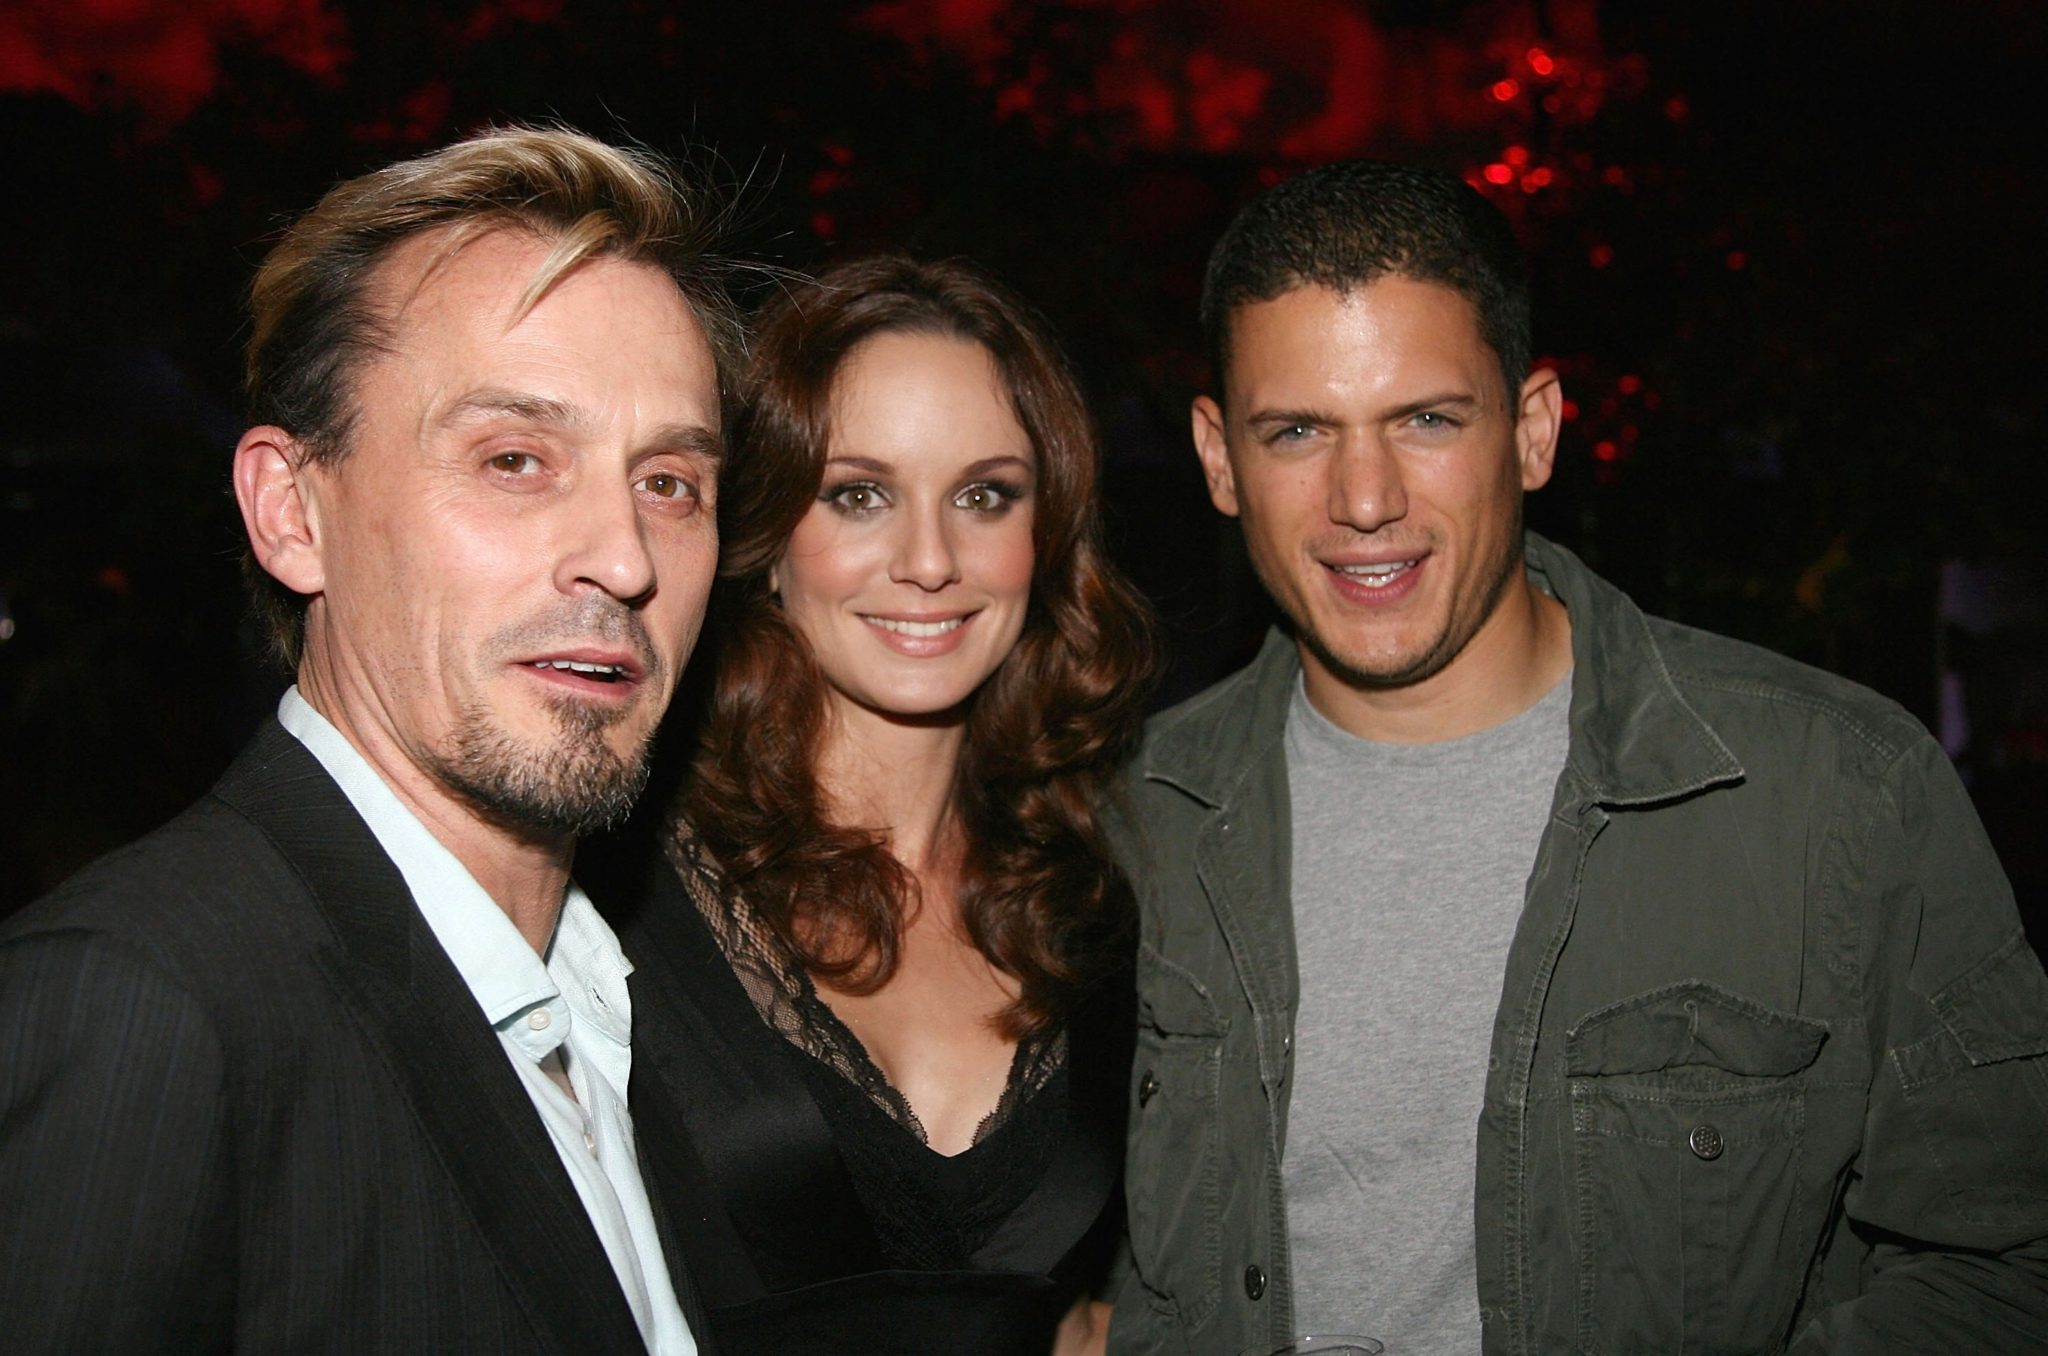 Prison Break actors Robert Knepper, Sarah Wayne Callies and Wentworth Miller, who play T-Bag, Sara and Michael, in 2006